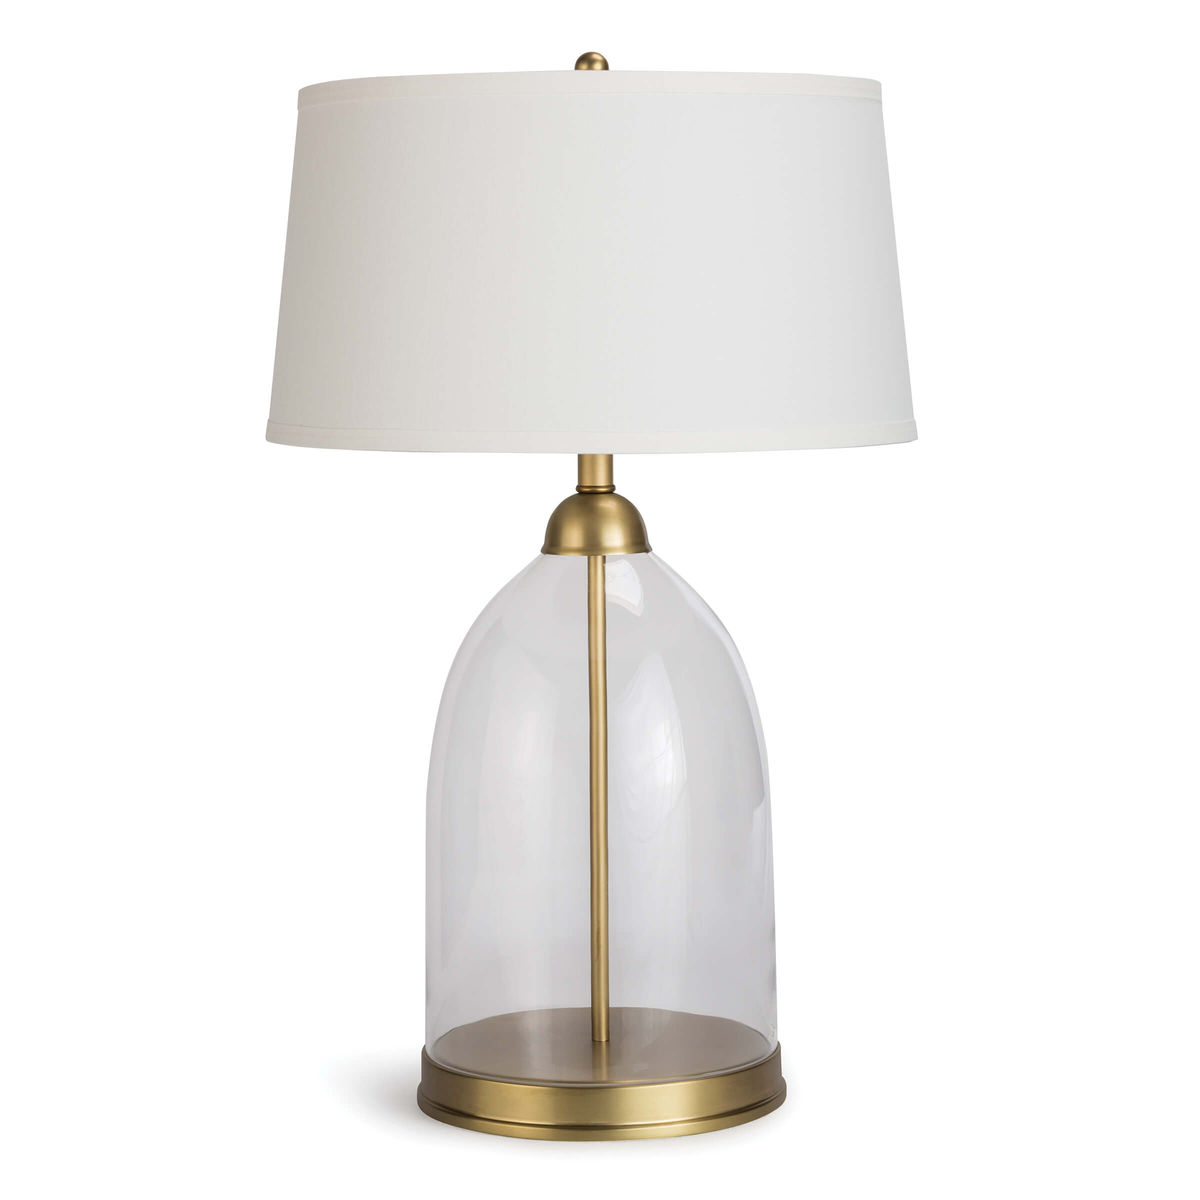 Glass Dome Table Lamp (Natural Brass)